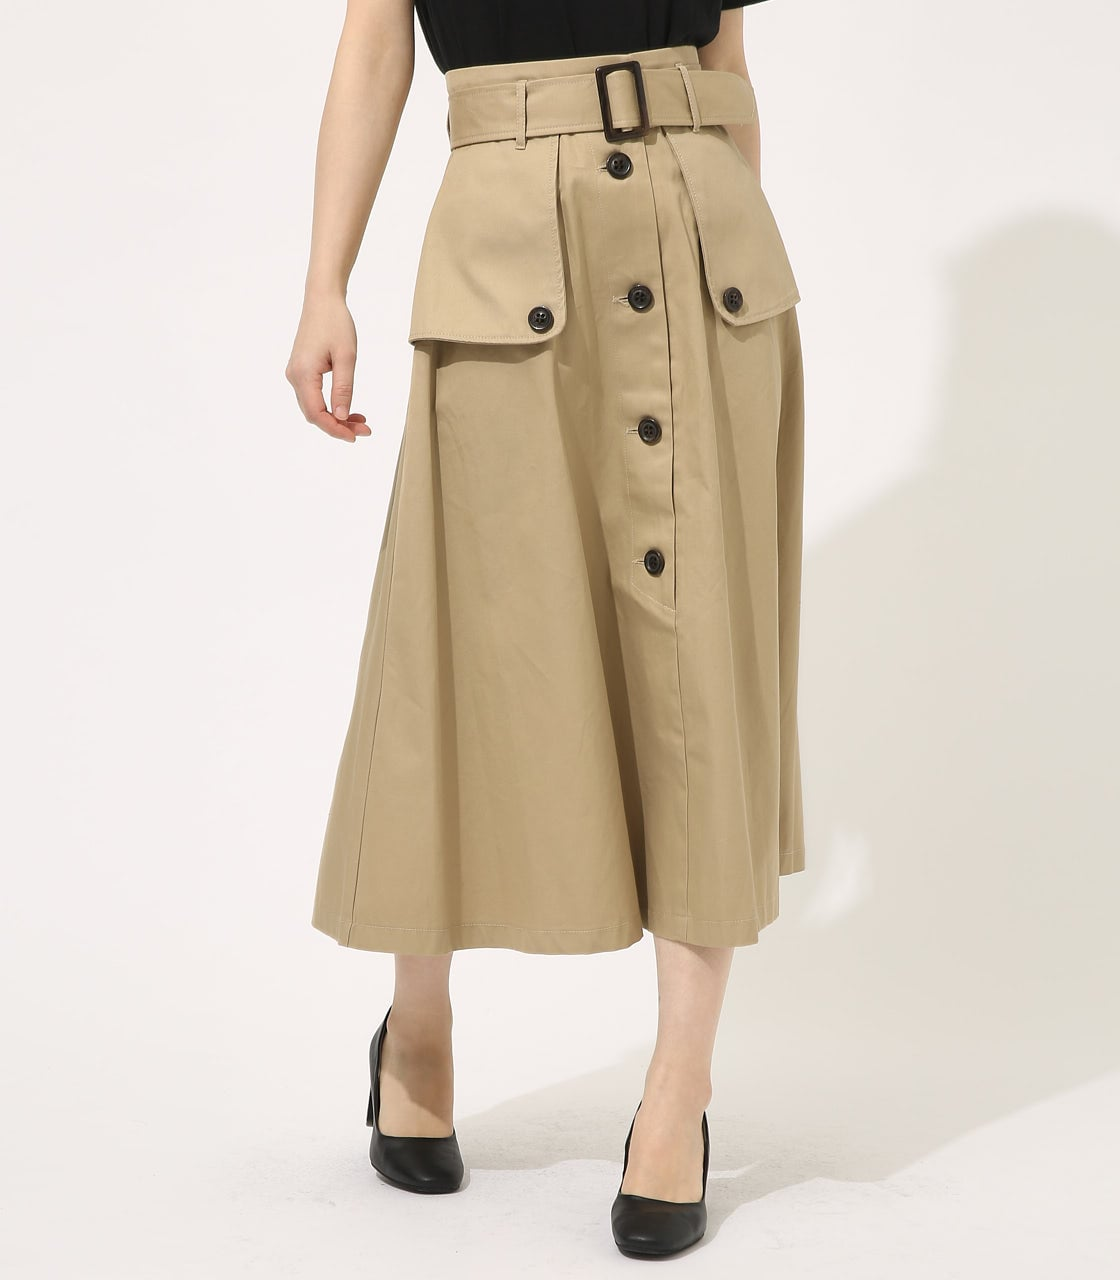 【AZUL BY MOUSSY】TRENCH FLARE SKIRT 詳細画像 BEG 1